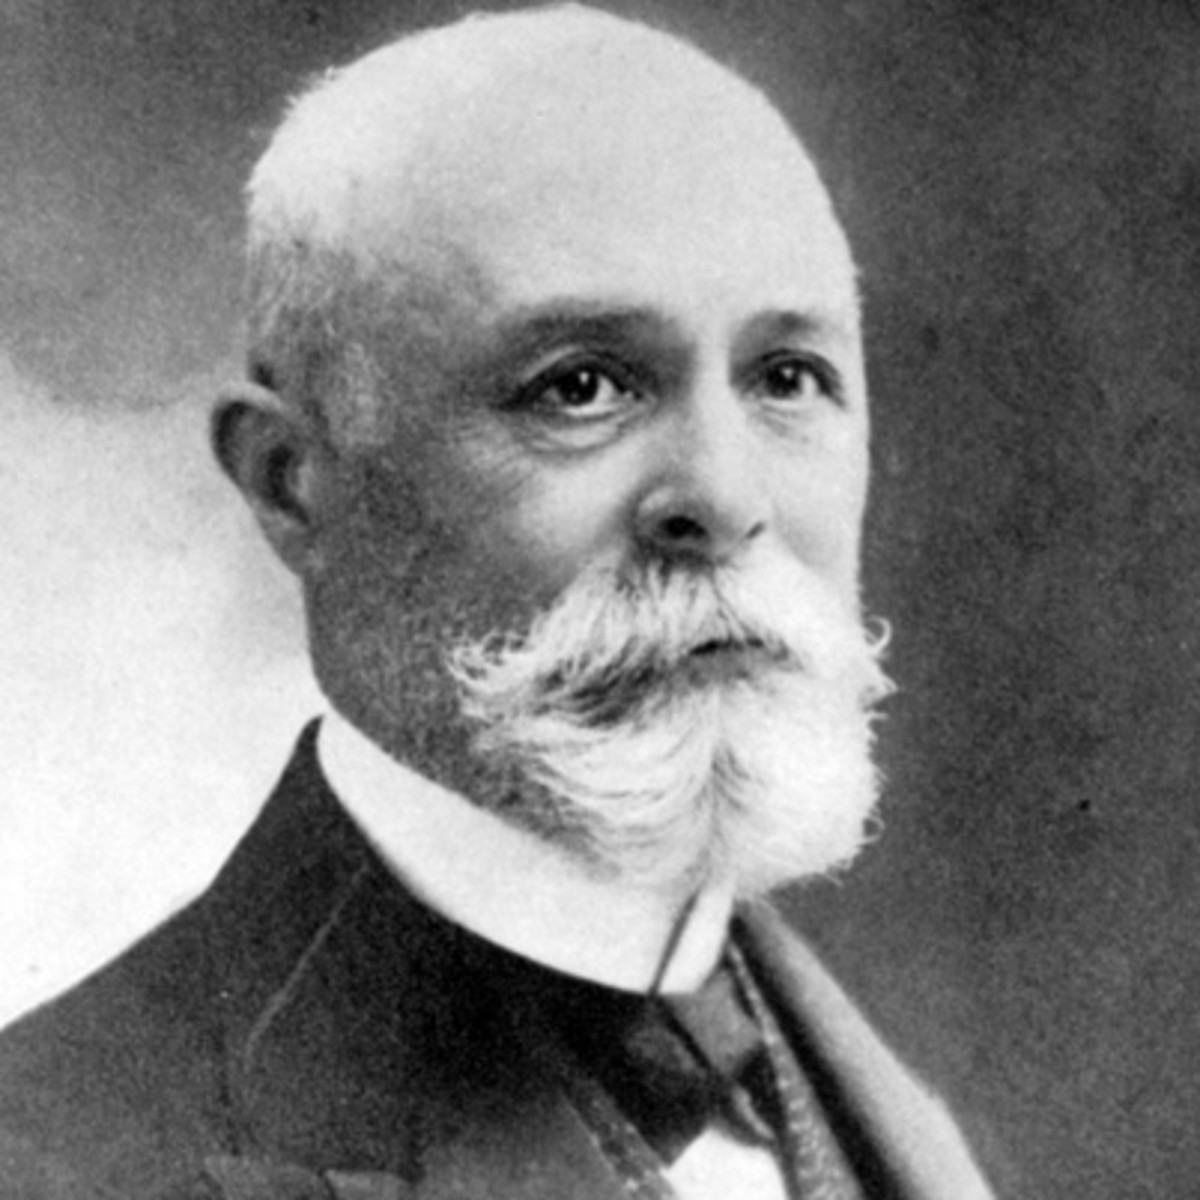 antoine henri becquerel On biographycom, learn more about the work and life of french scientist henri becquerel, who made pioneering discoveries in radioactivity and won a nobel prize in 1903.